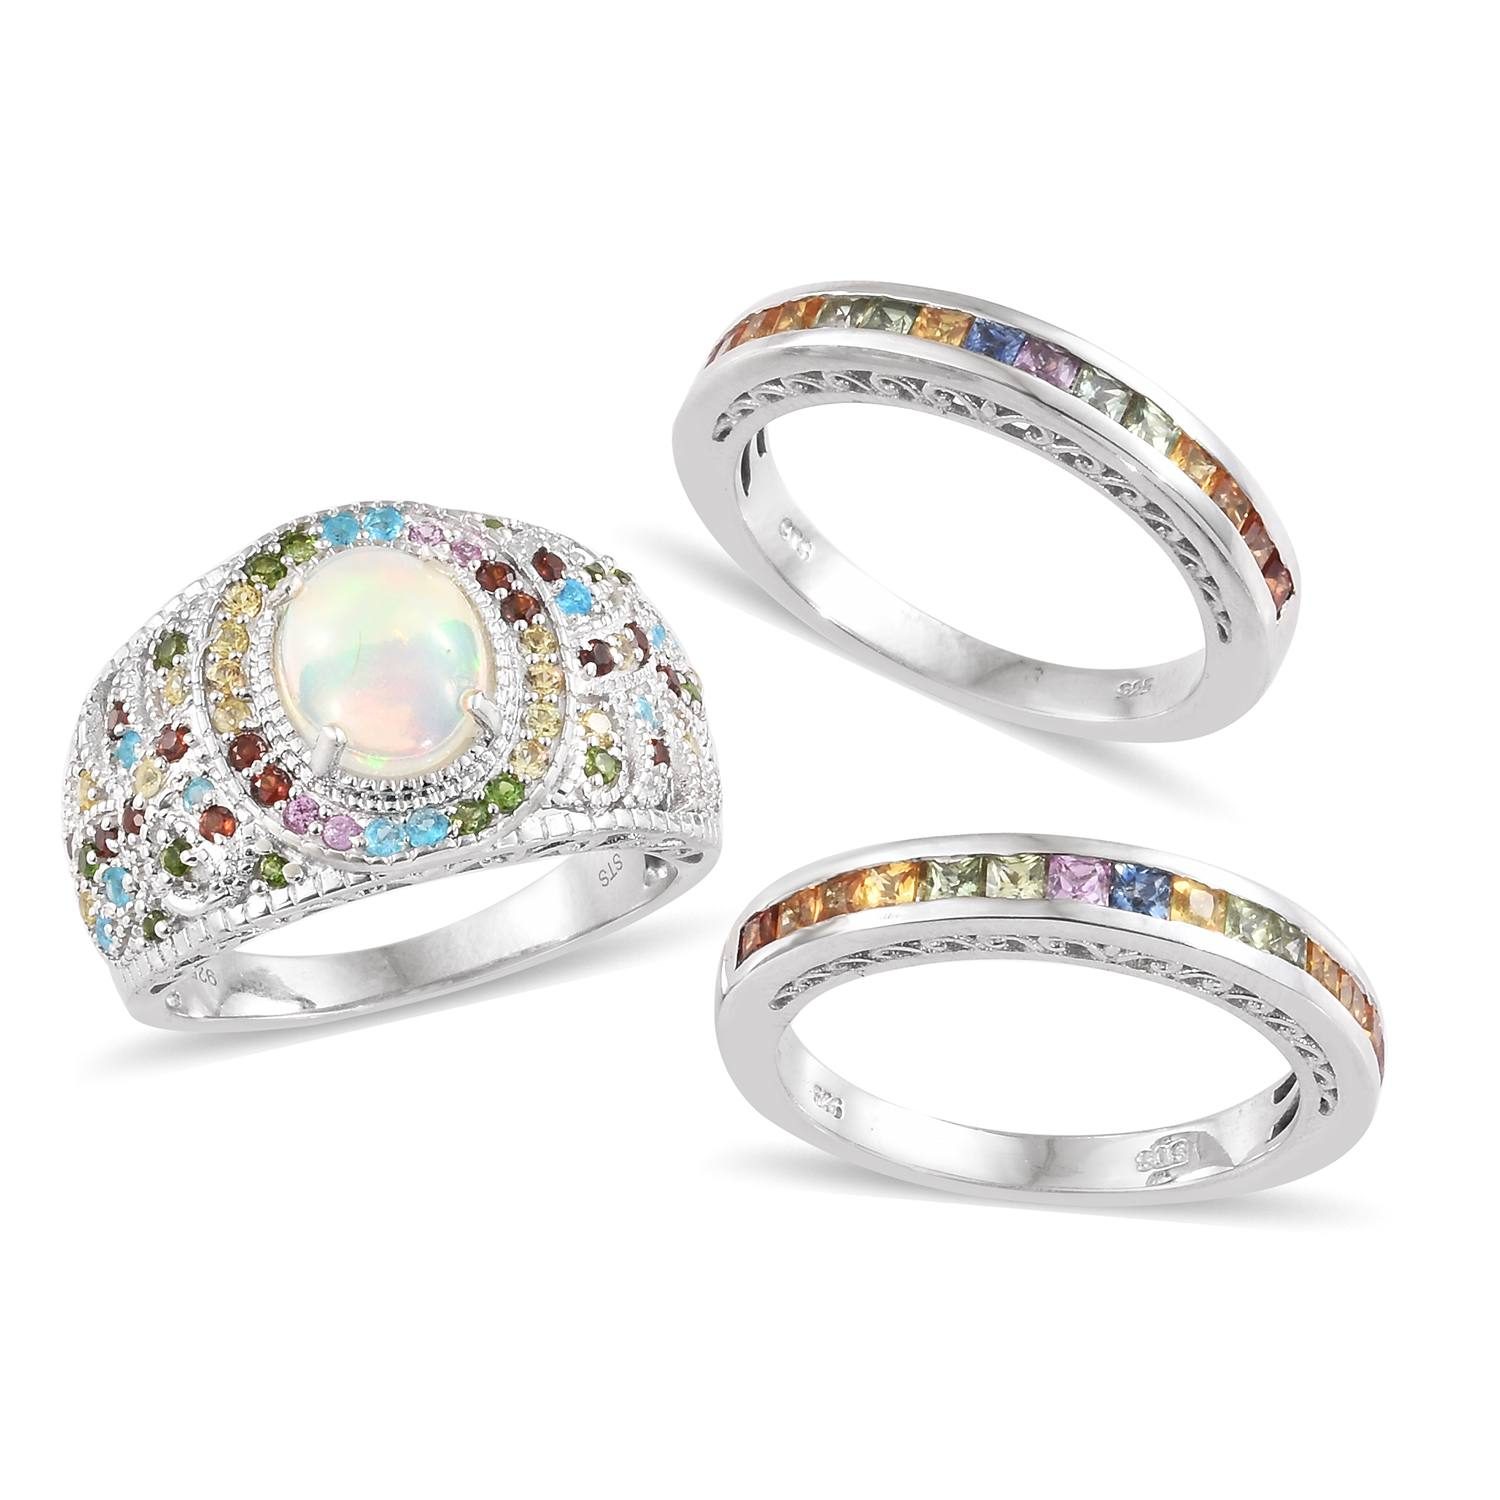 Ethiopian Welo Opal, Multi Gemstone Ring Set in Platinum Over Sterling Silver (Size 6) 5.25 ctw